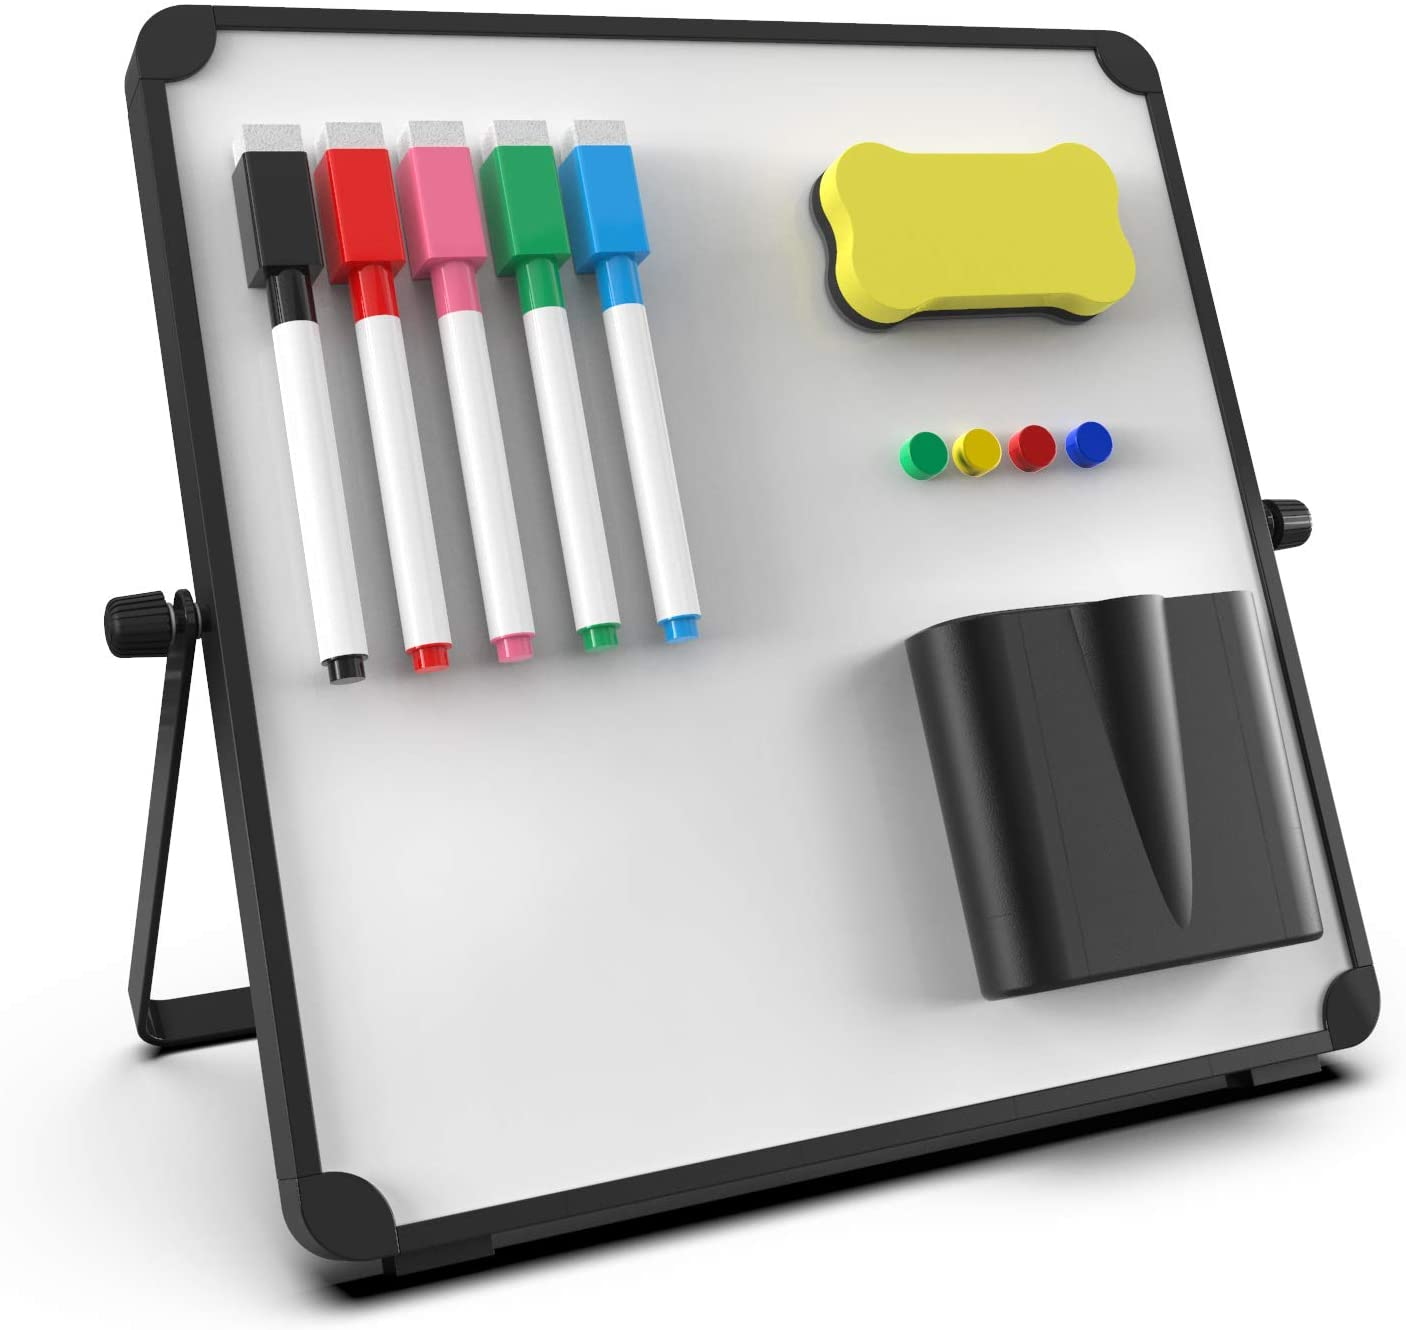 WEIJIAXIANG Dry Erase Board for Kids - Magnetic WHITEBOARD with Dry Erase Markers and Cleaning Cloth Included - Yola WhiteBoard | szyola.net